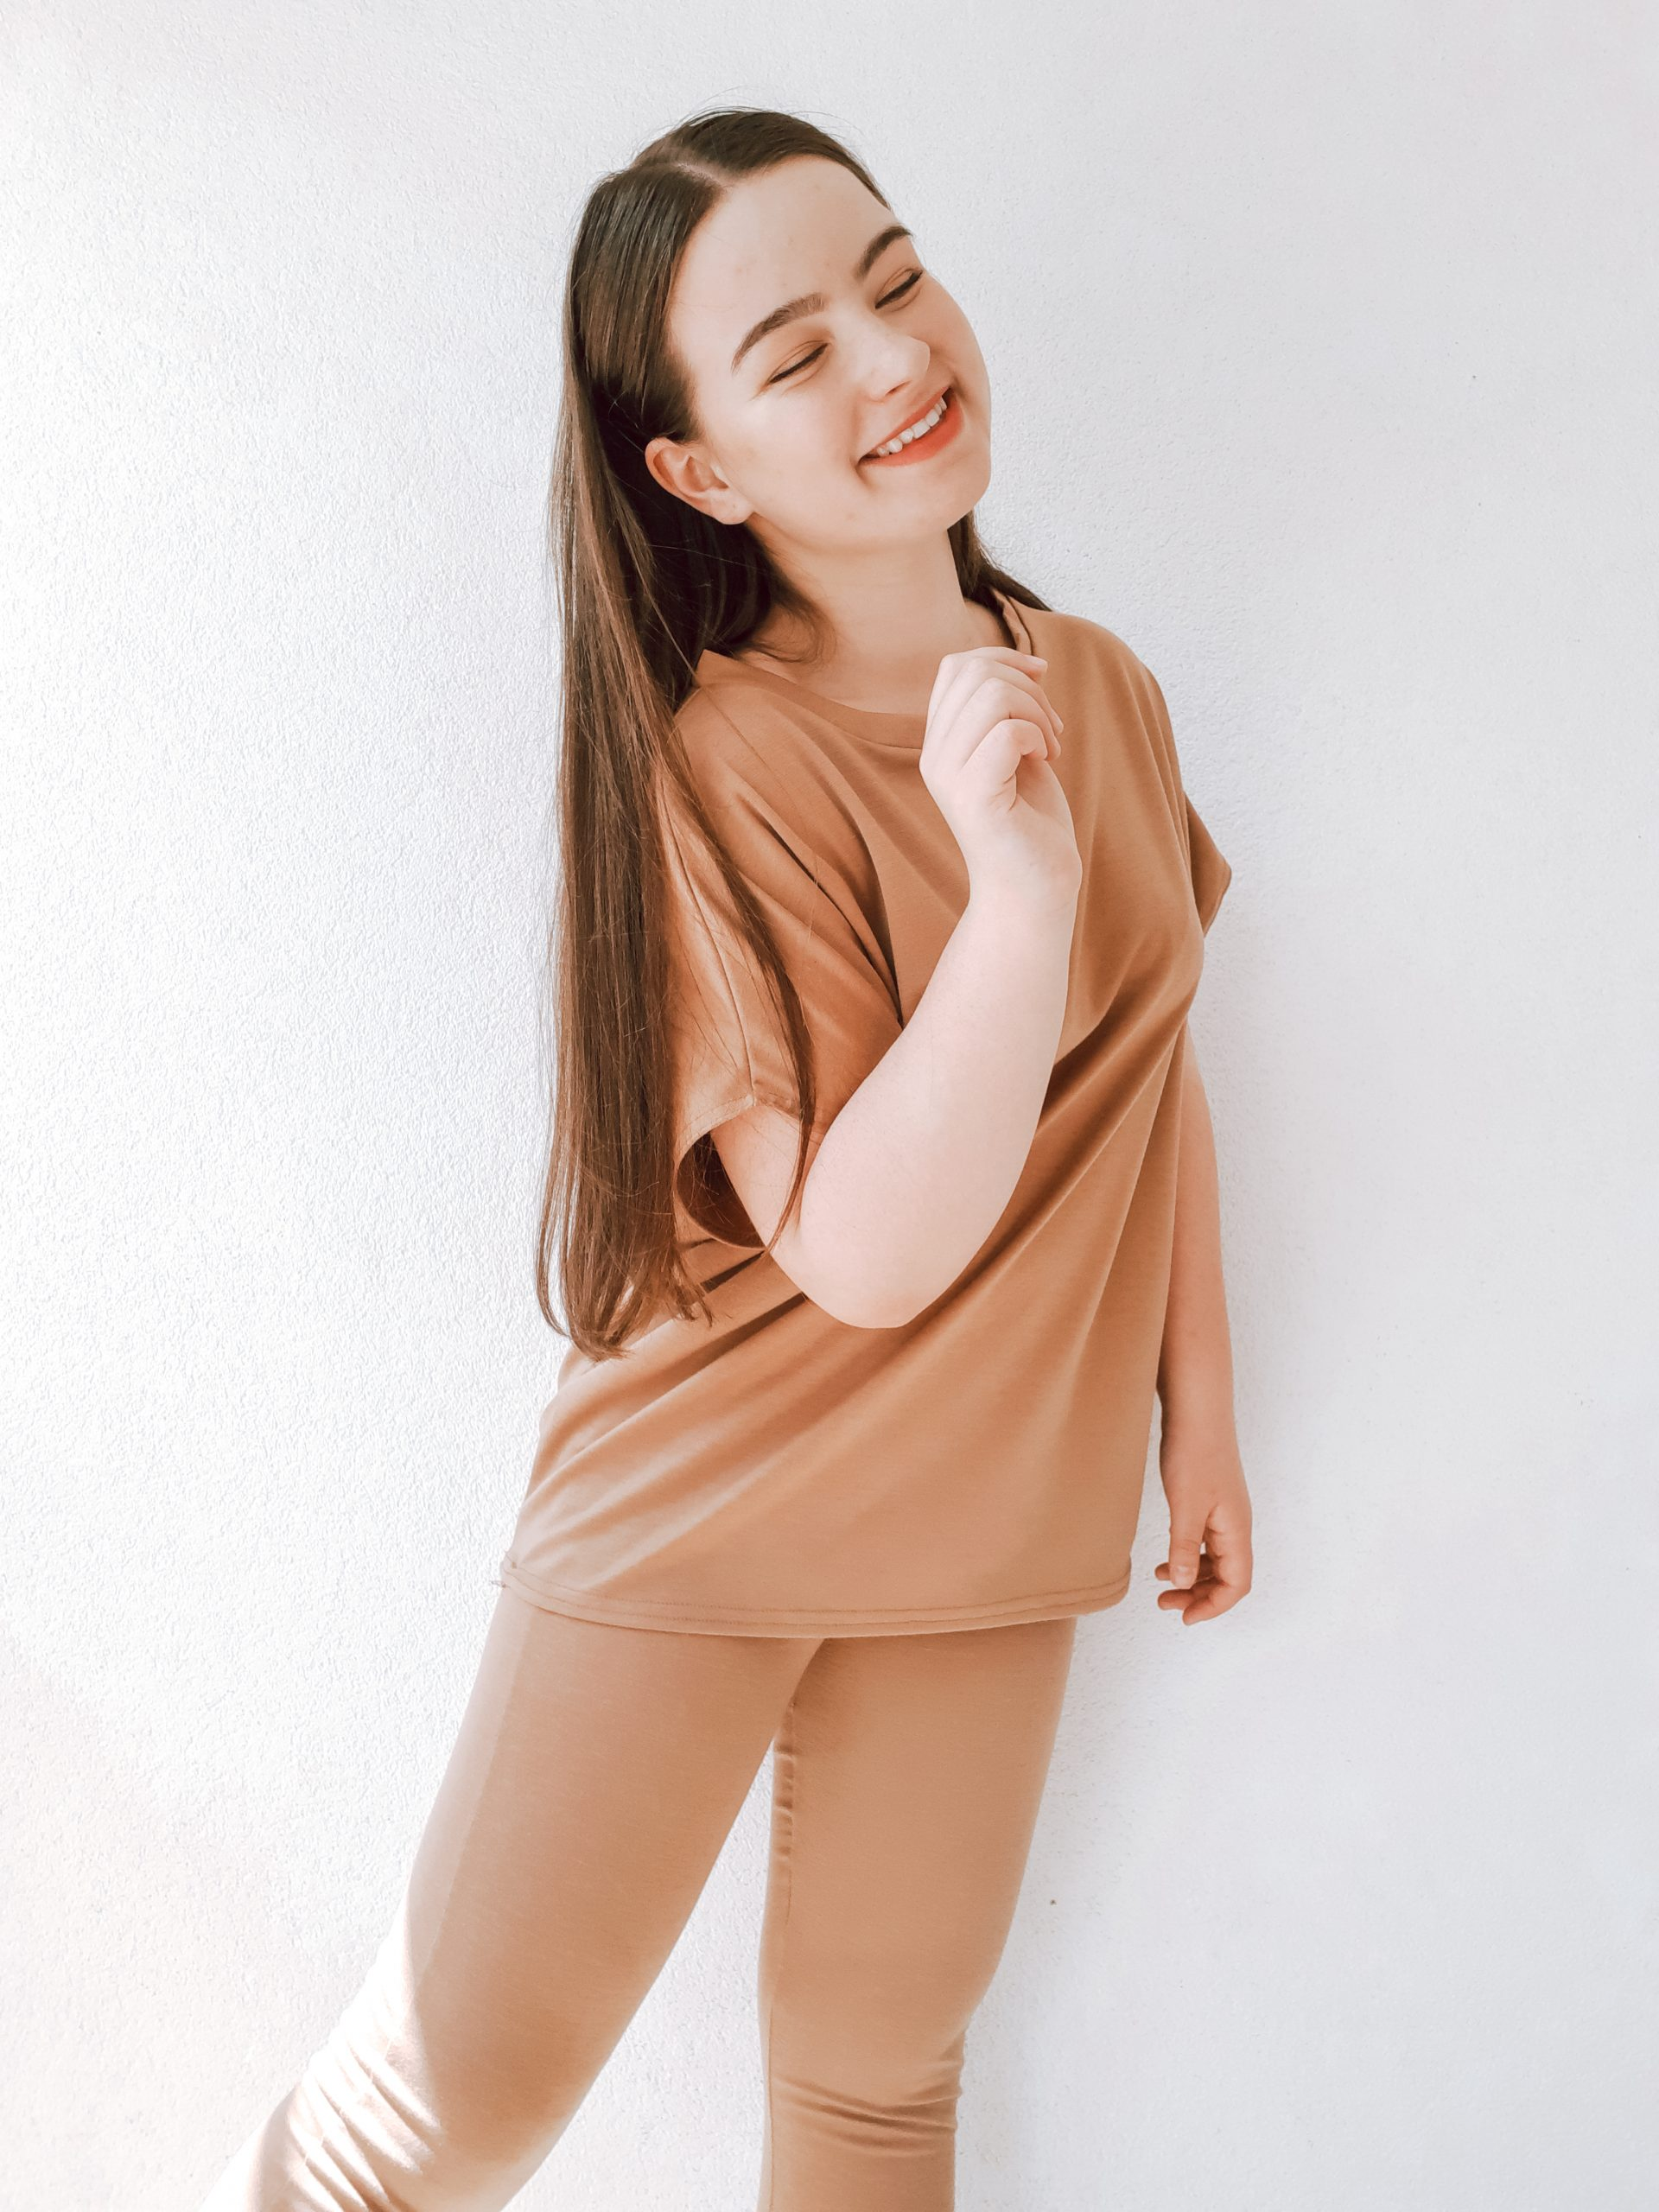 living like v Camel Short Sleeve Boxy Loungewear Set - Lacy femme luxe review haul